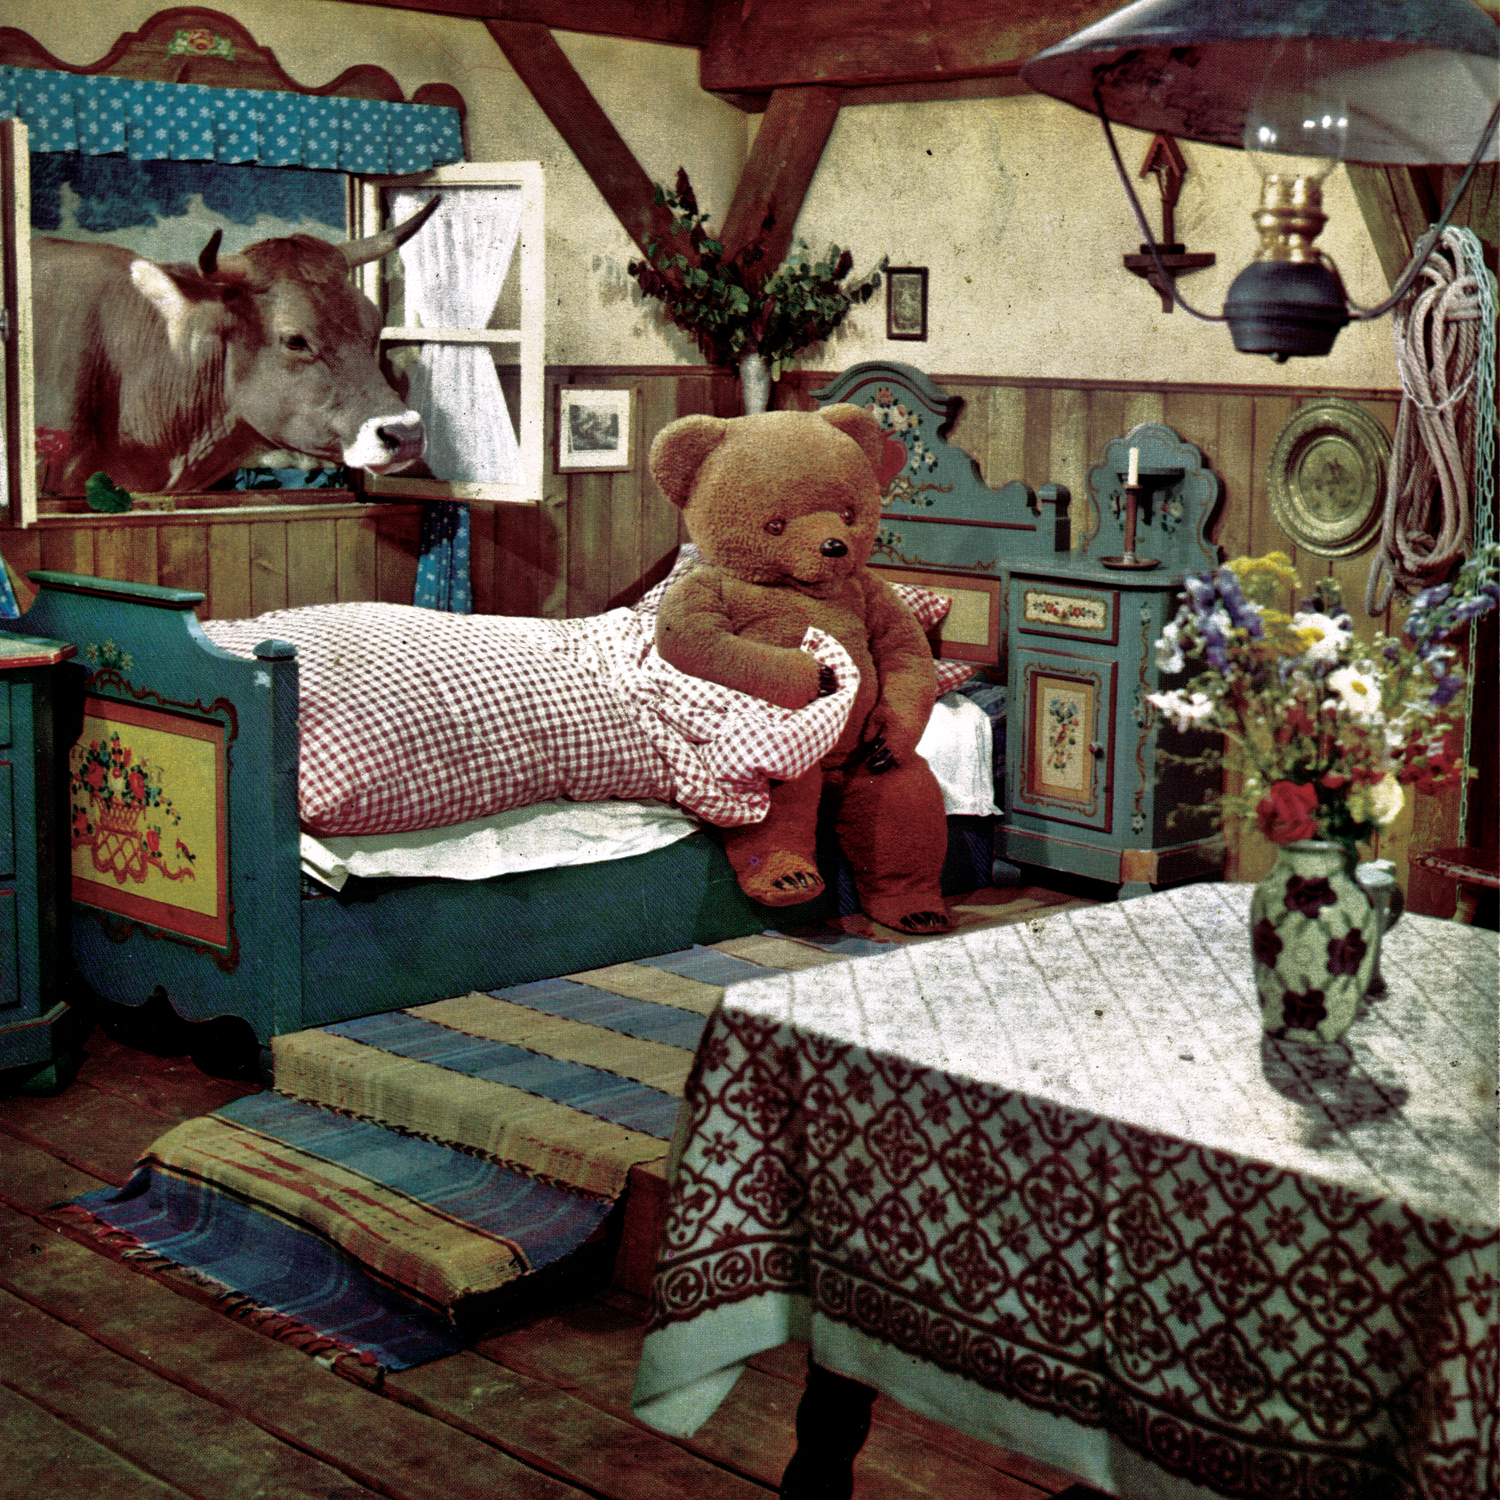 John Congleton album cover 1500 x 1500